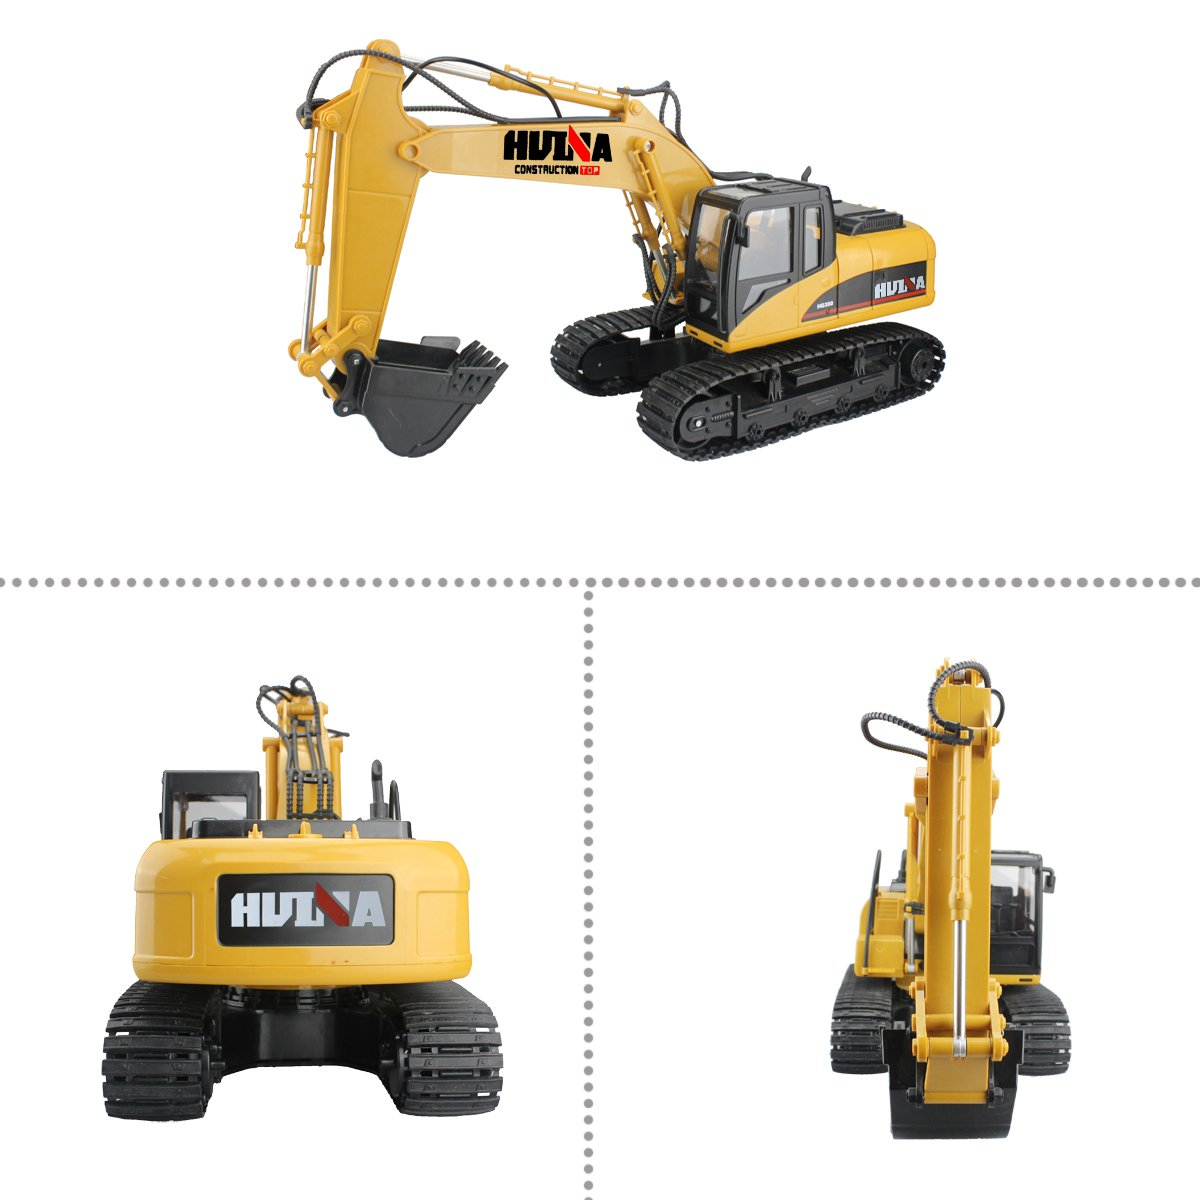 RC Truck Remote Control Excavator Crawler Tractor 15 Channel 2.4G Construction Vehicle Digger Electronics Hobby Toys with Simulation Sound and Flashing Lights by fisca (Image #7)